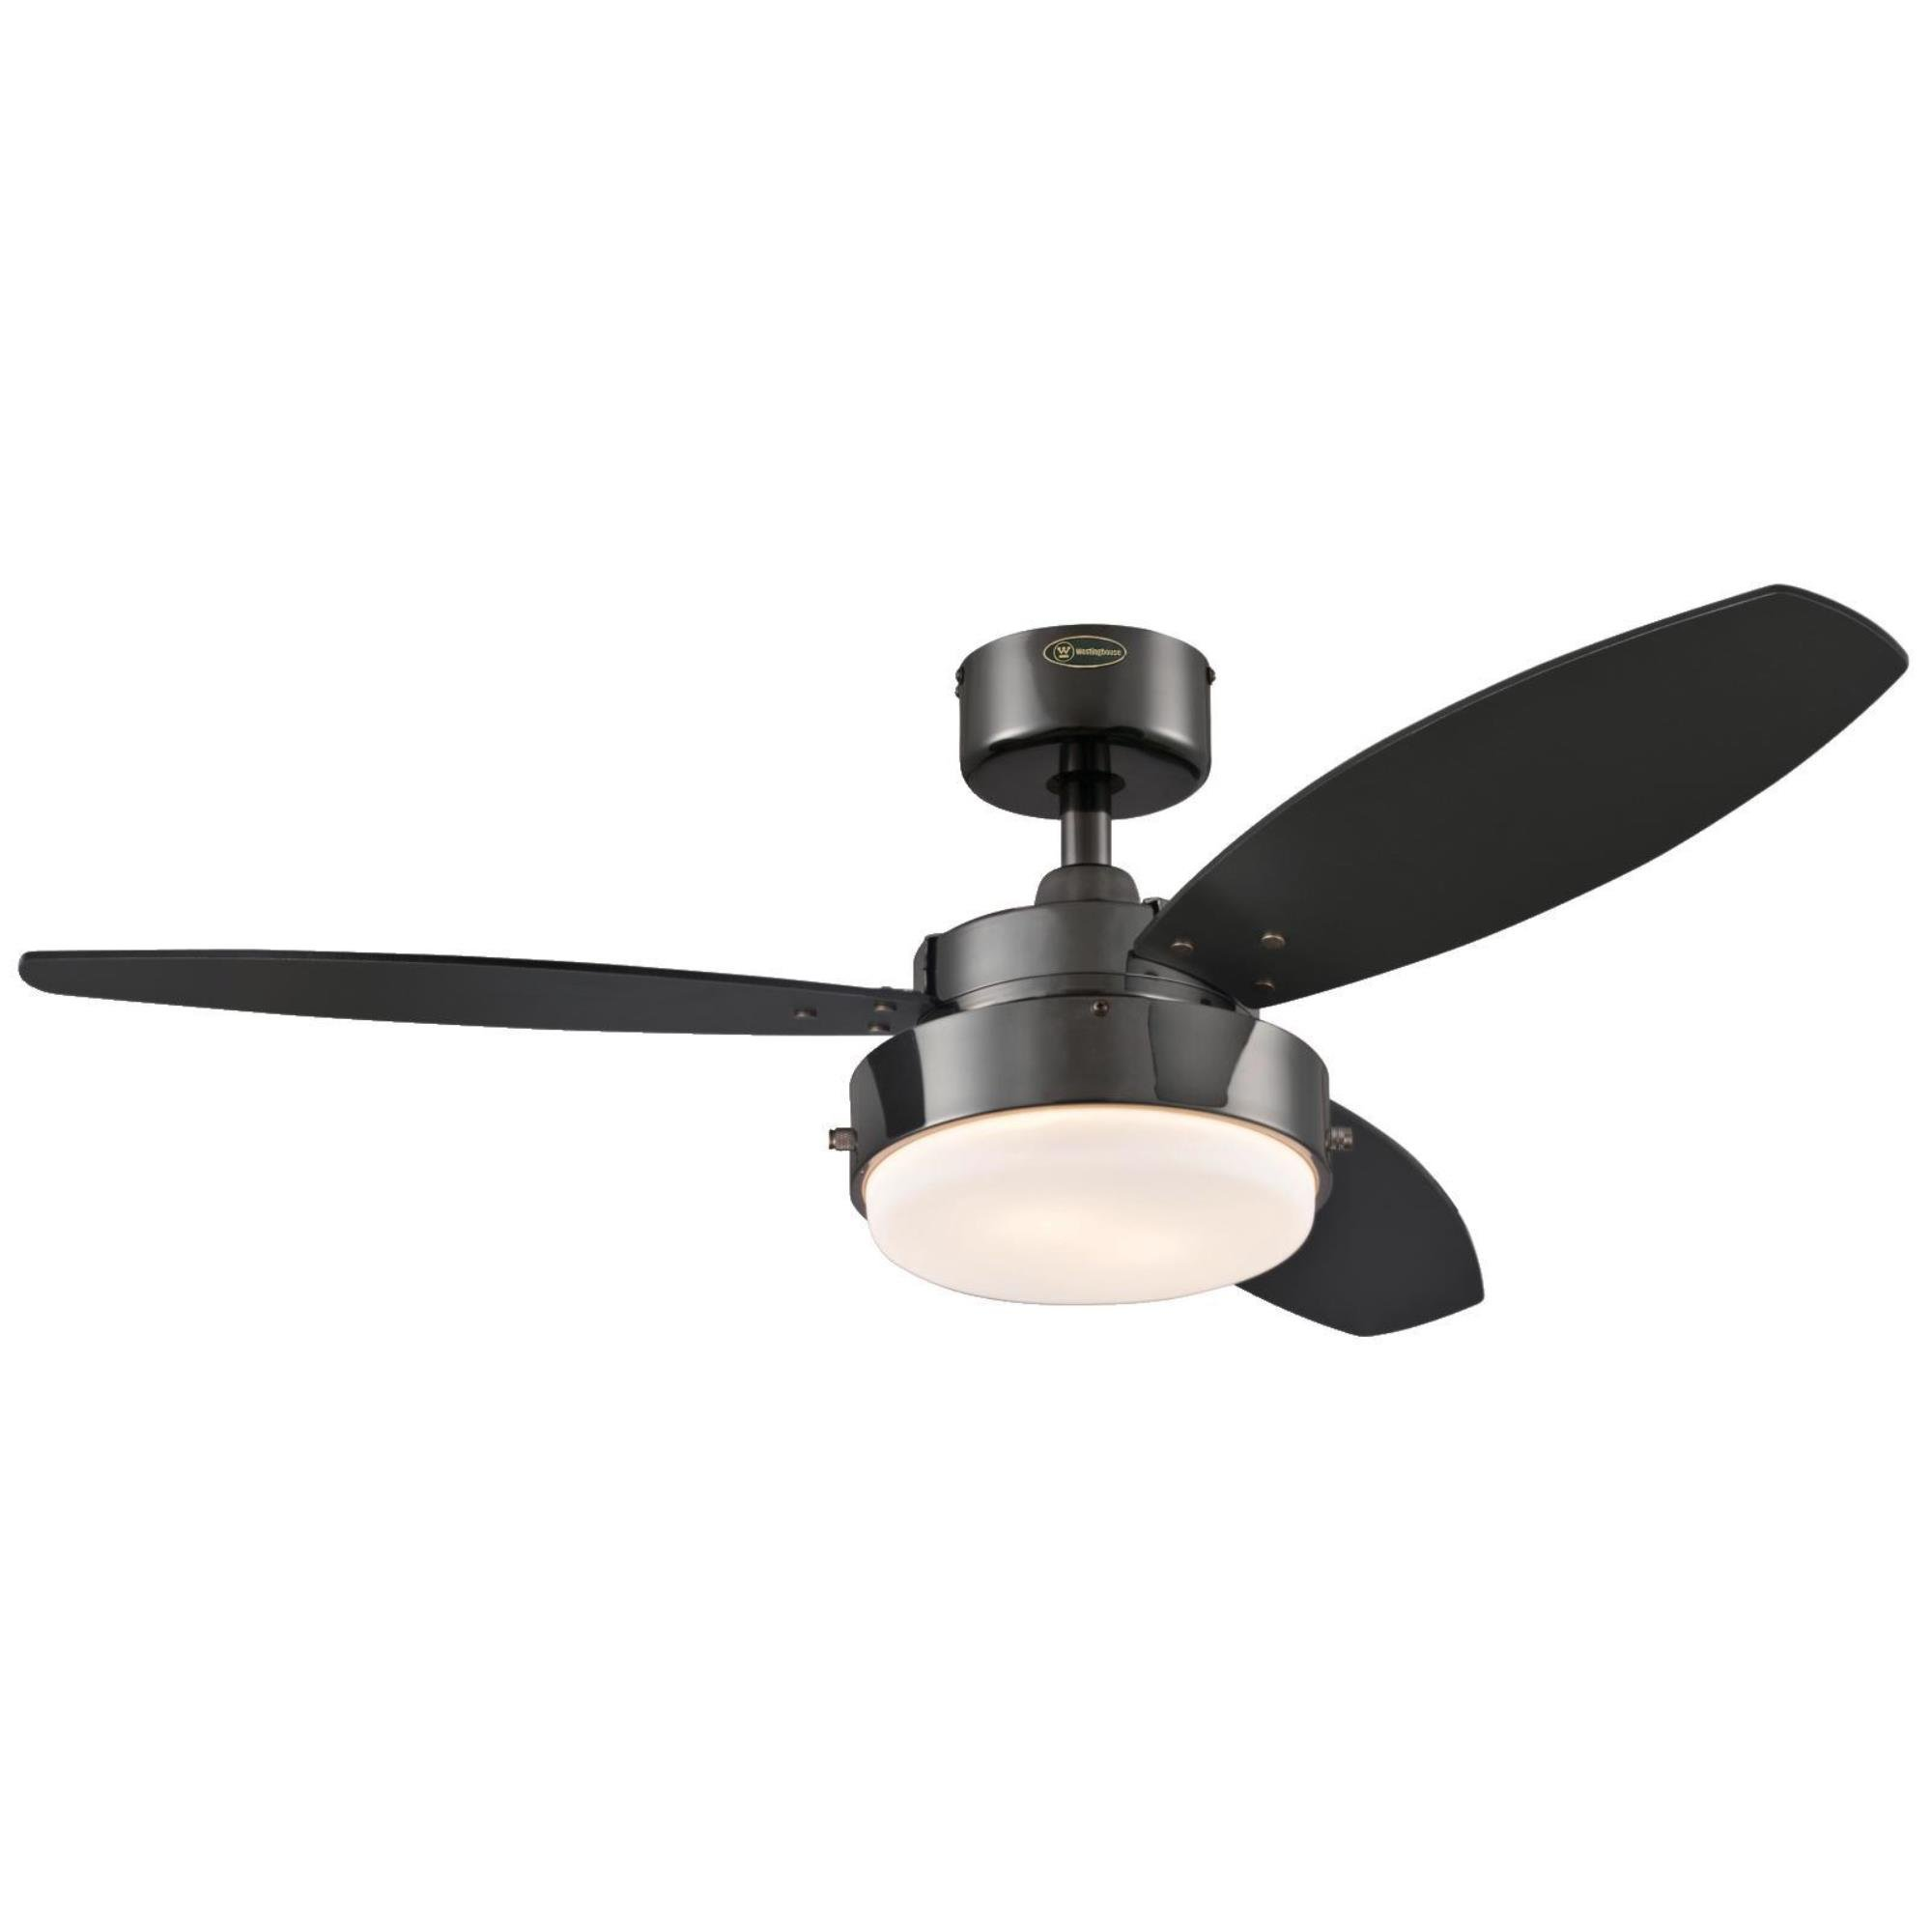 Westinghouse 7876400 Alloy 42-Inch Gun Metal Indoor Ceiling Fan, Light Kit with Opal Frosted Glass by Westinghouse Lighting